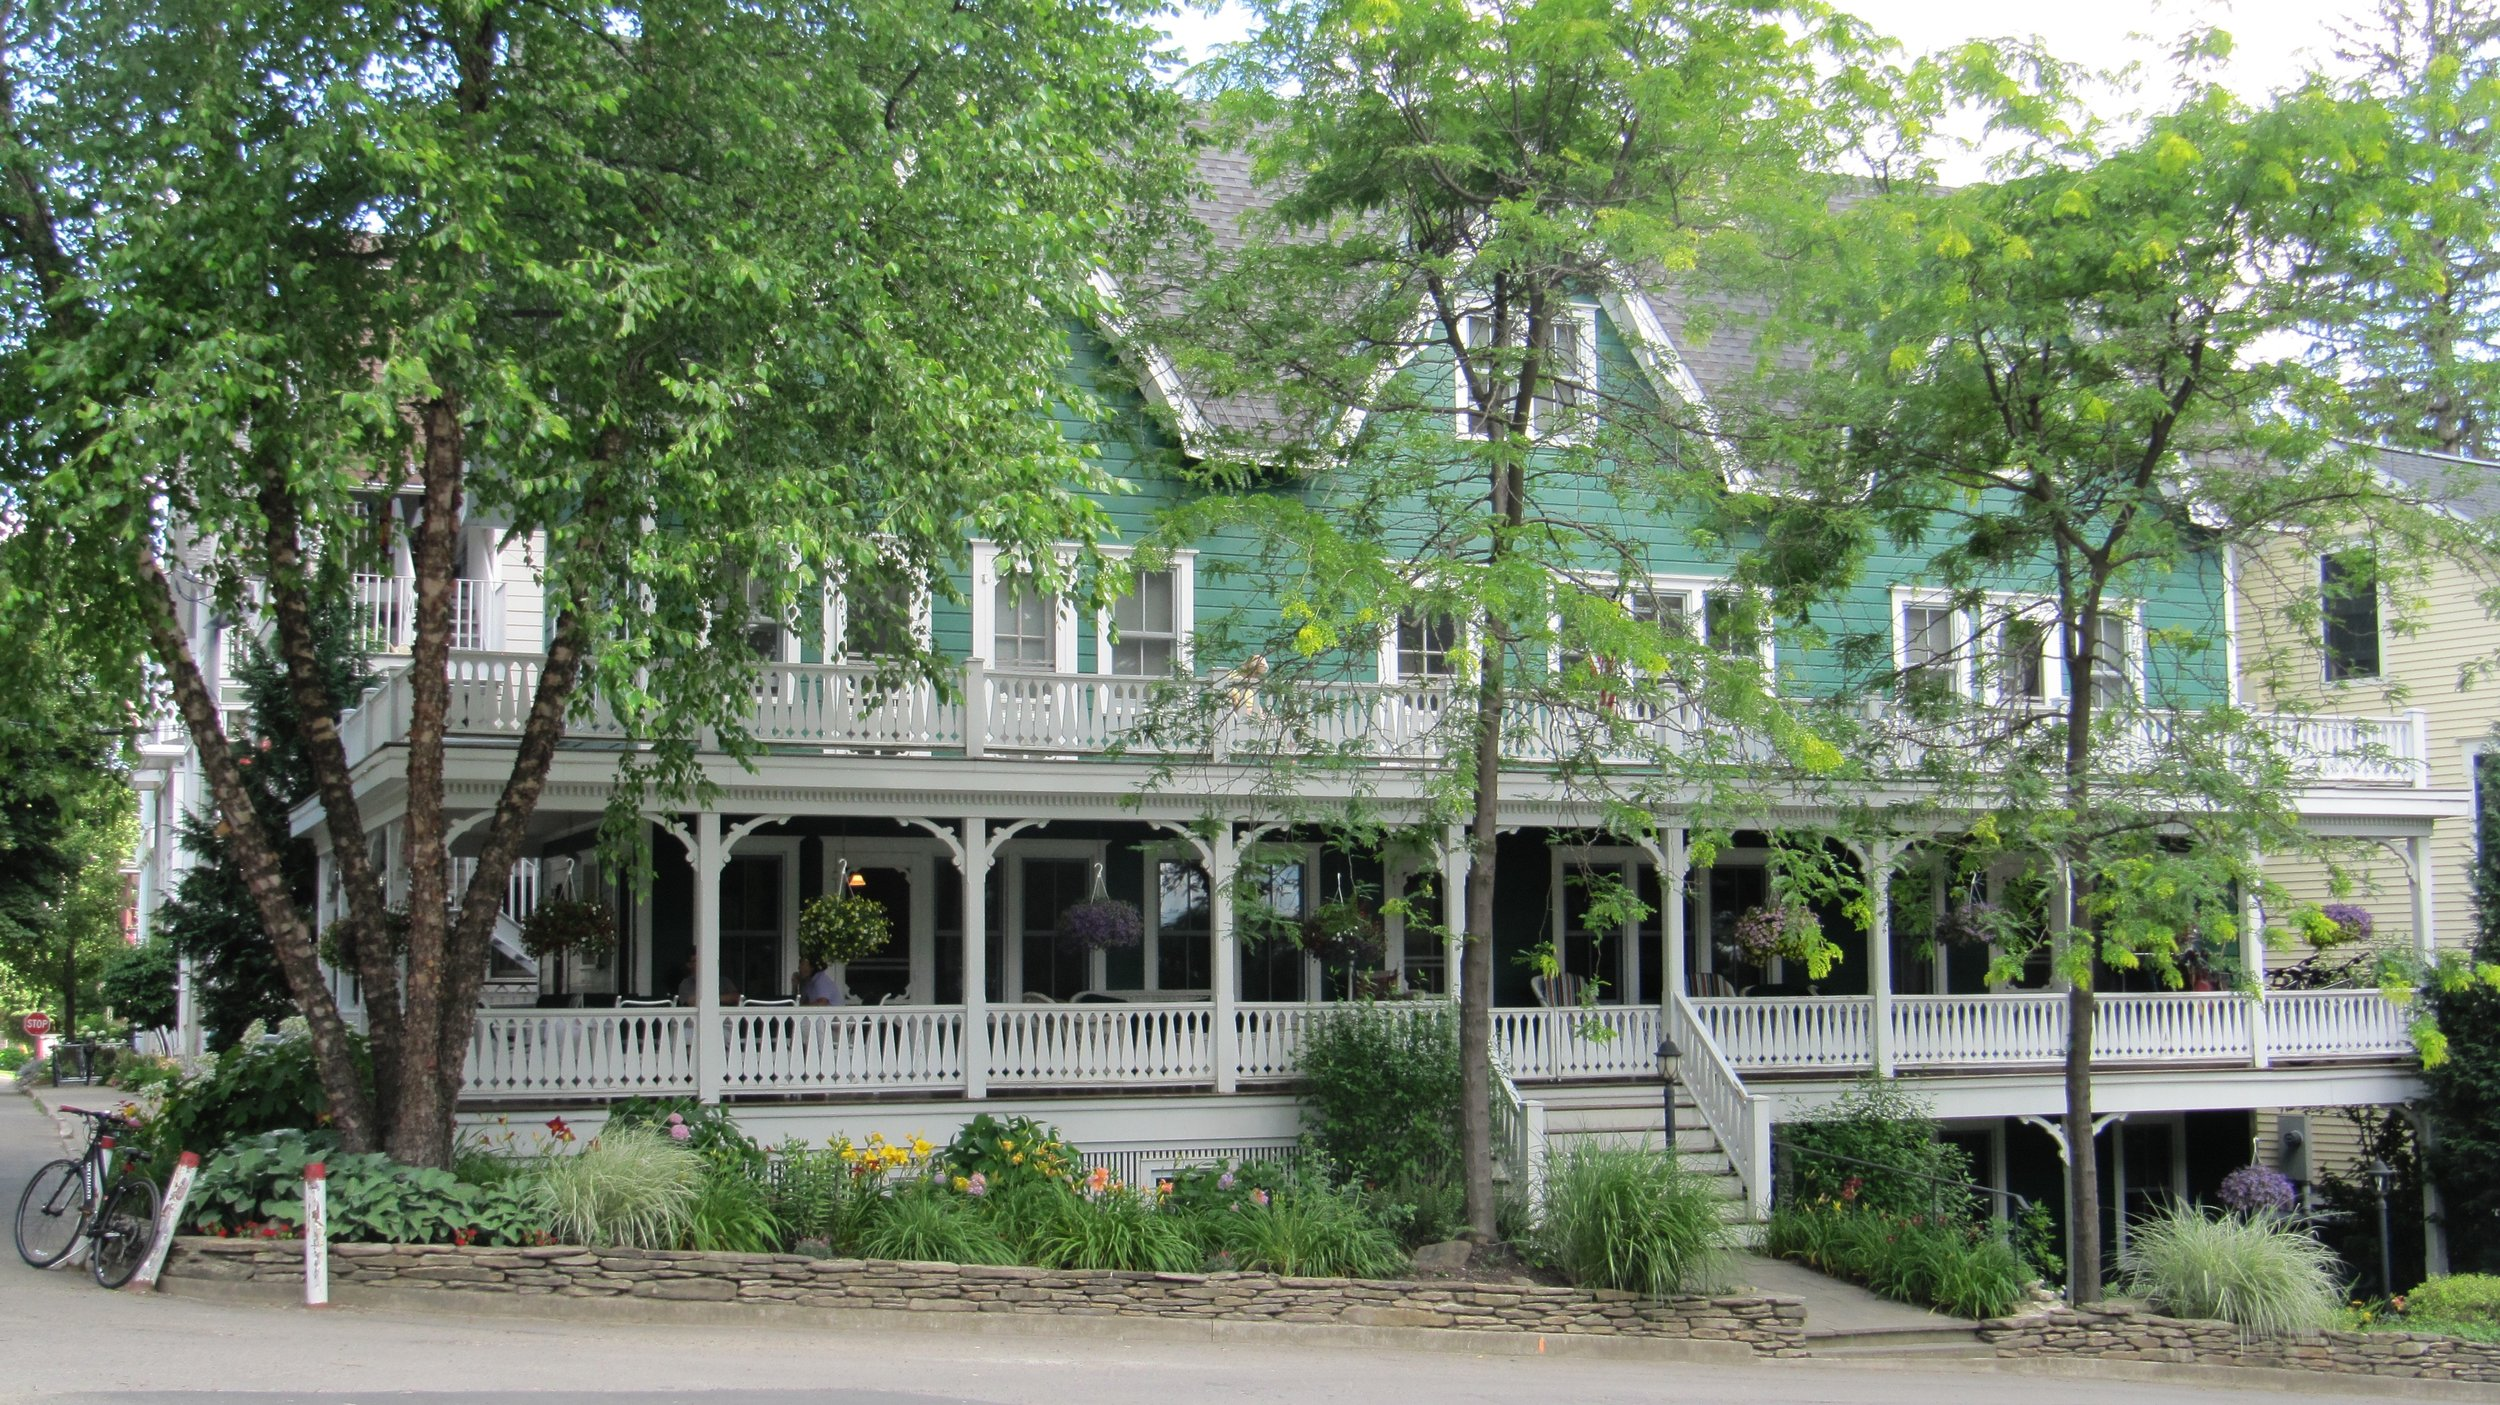 This splendid green and white new Victorian has porches that never end and is near the amphitheater.  The architect did an amazing job with an awkwardly narrow and hilly spot.